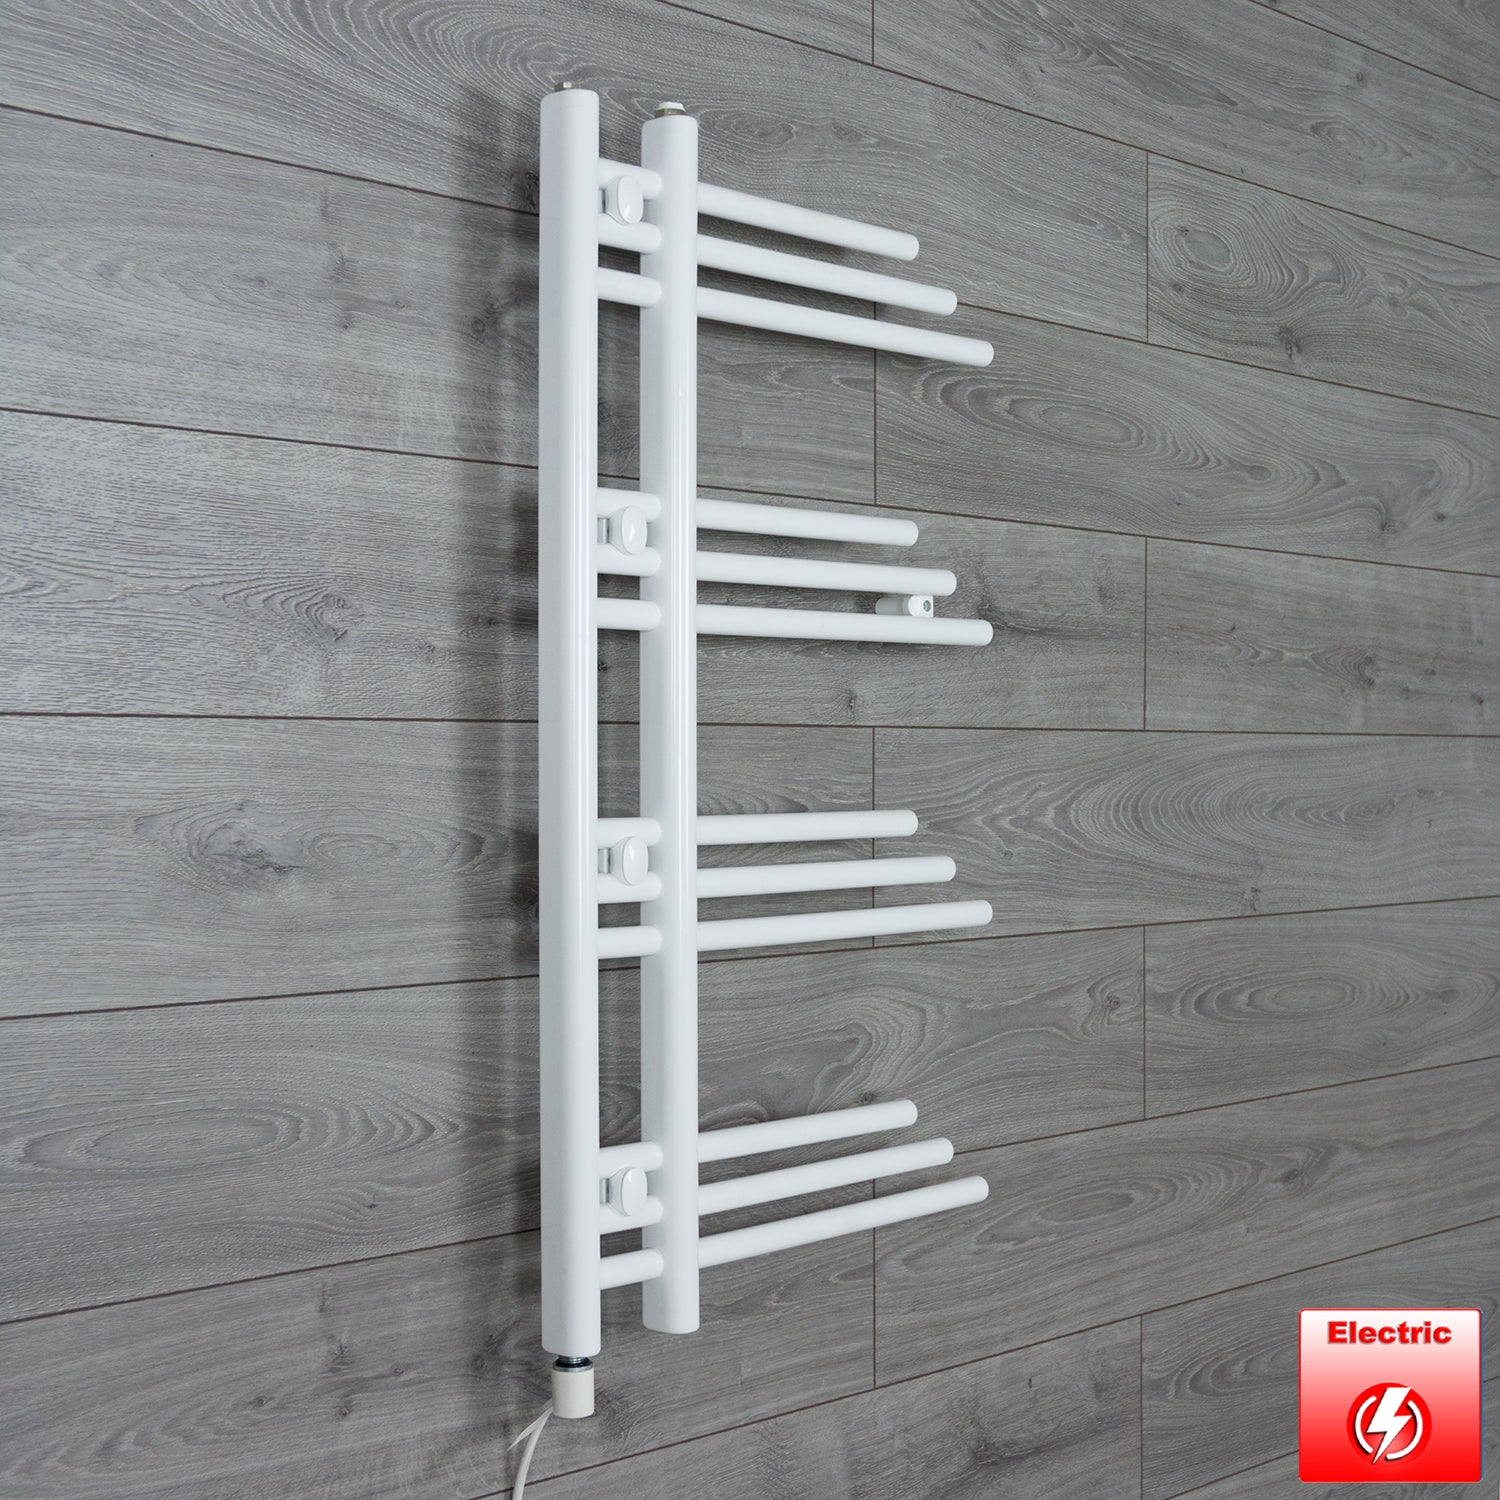 900 mm High x 500 mm Wide Fuji Designer Heated Towel Rail Radiator White